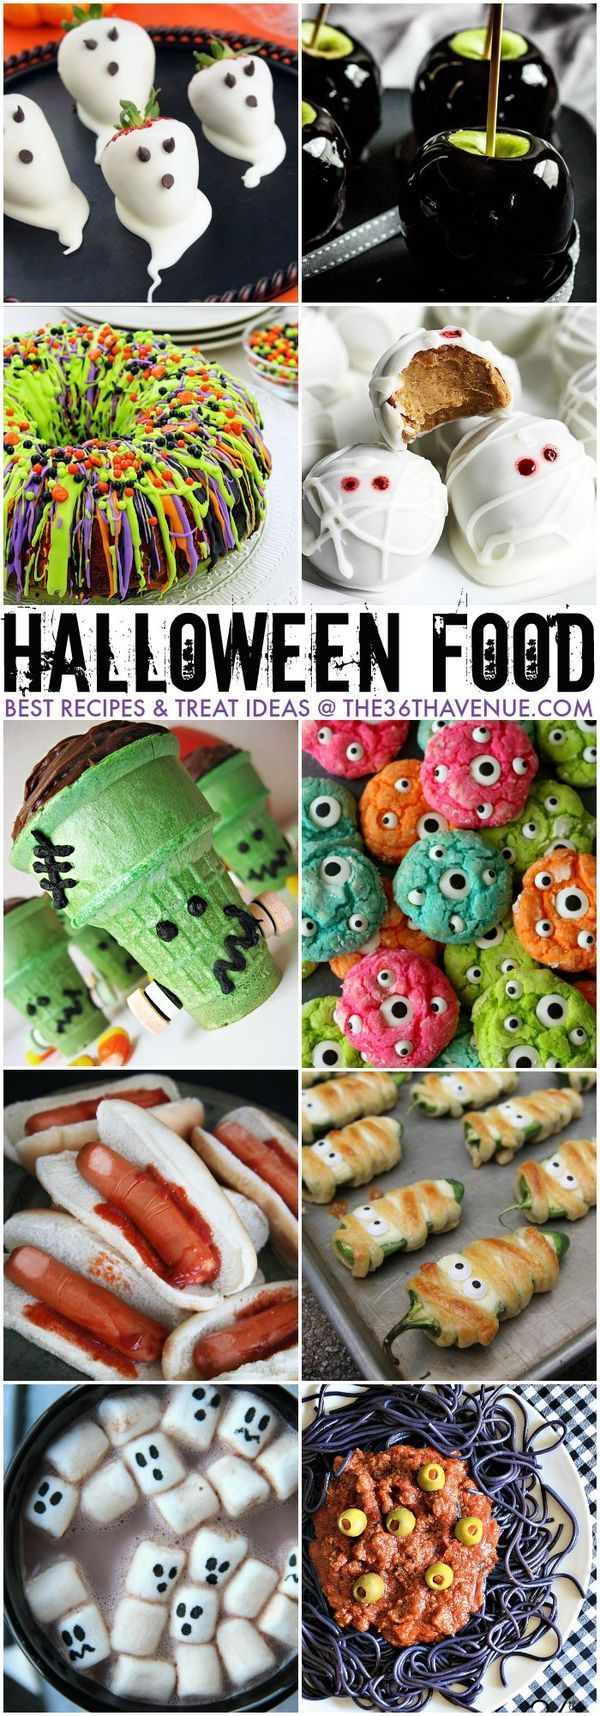 Best 20+ Halloween dishes ideas on Pinterest | Halloween food ...